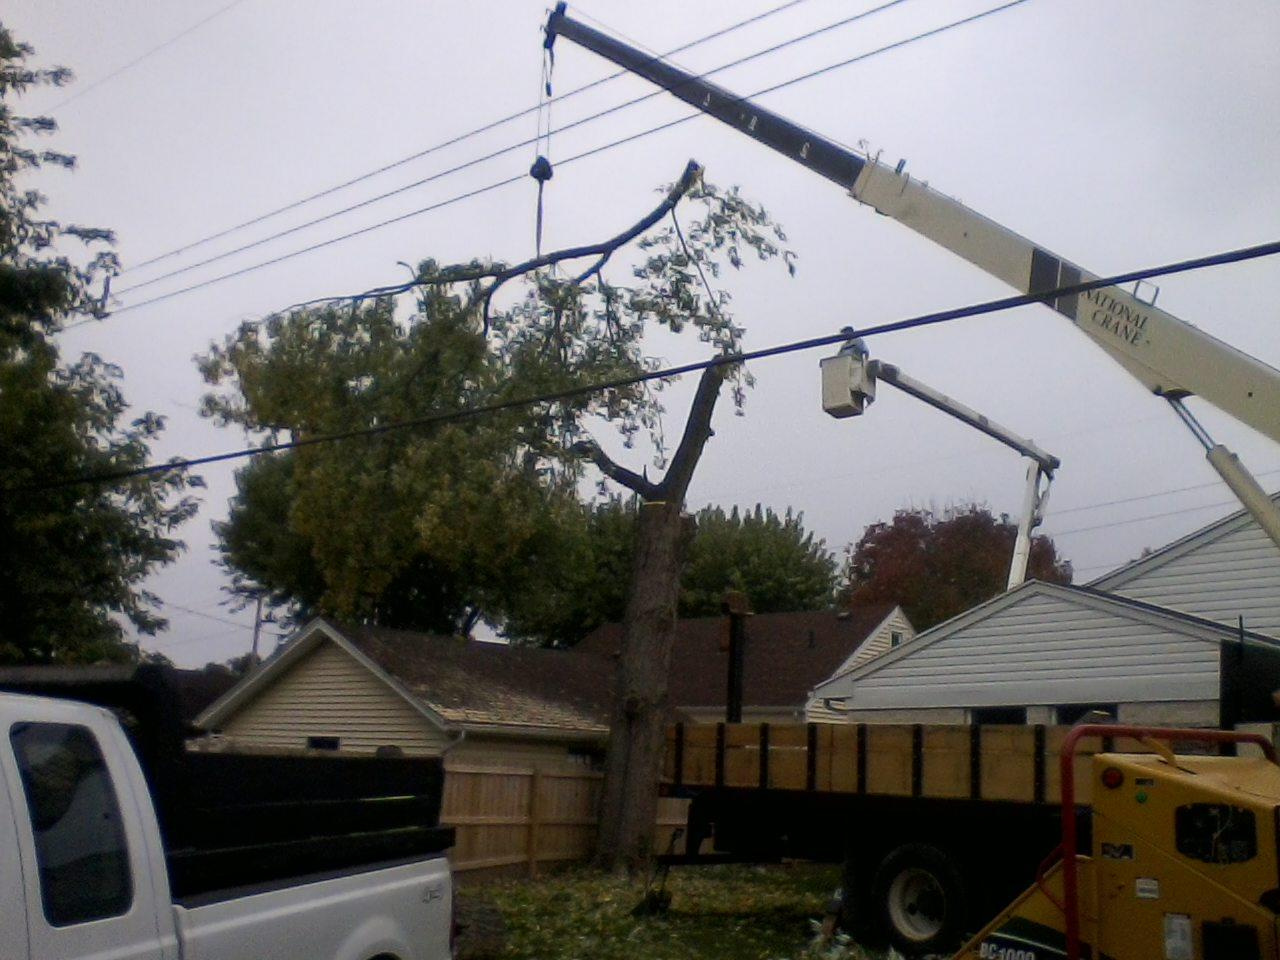 Working around powerlines